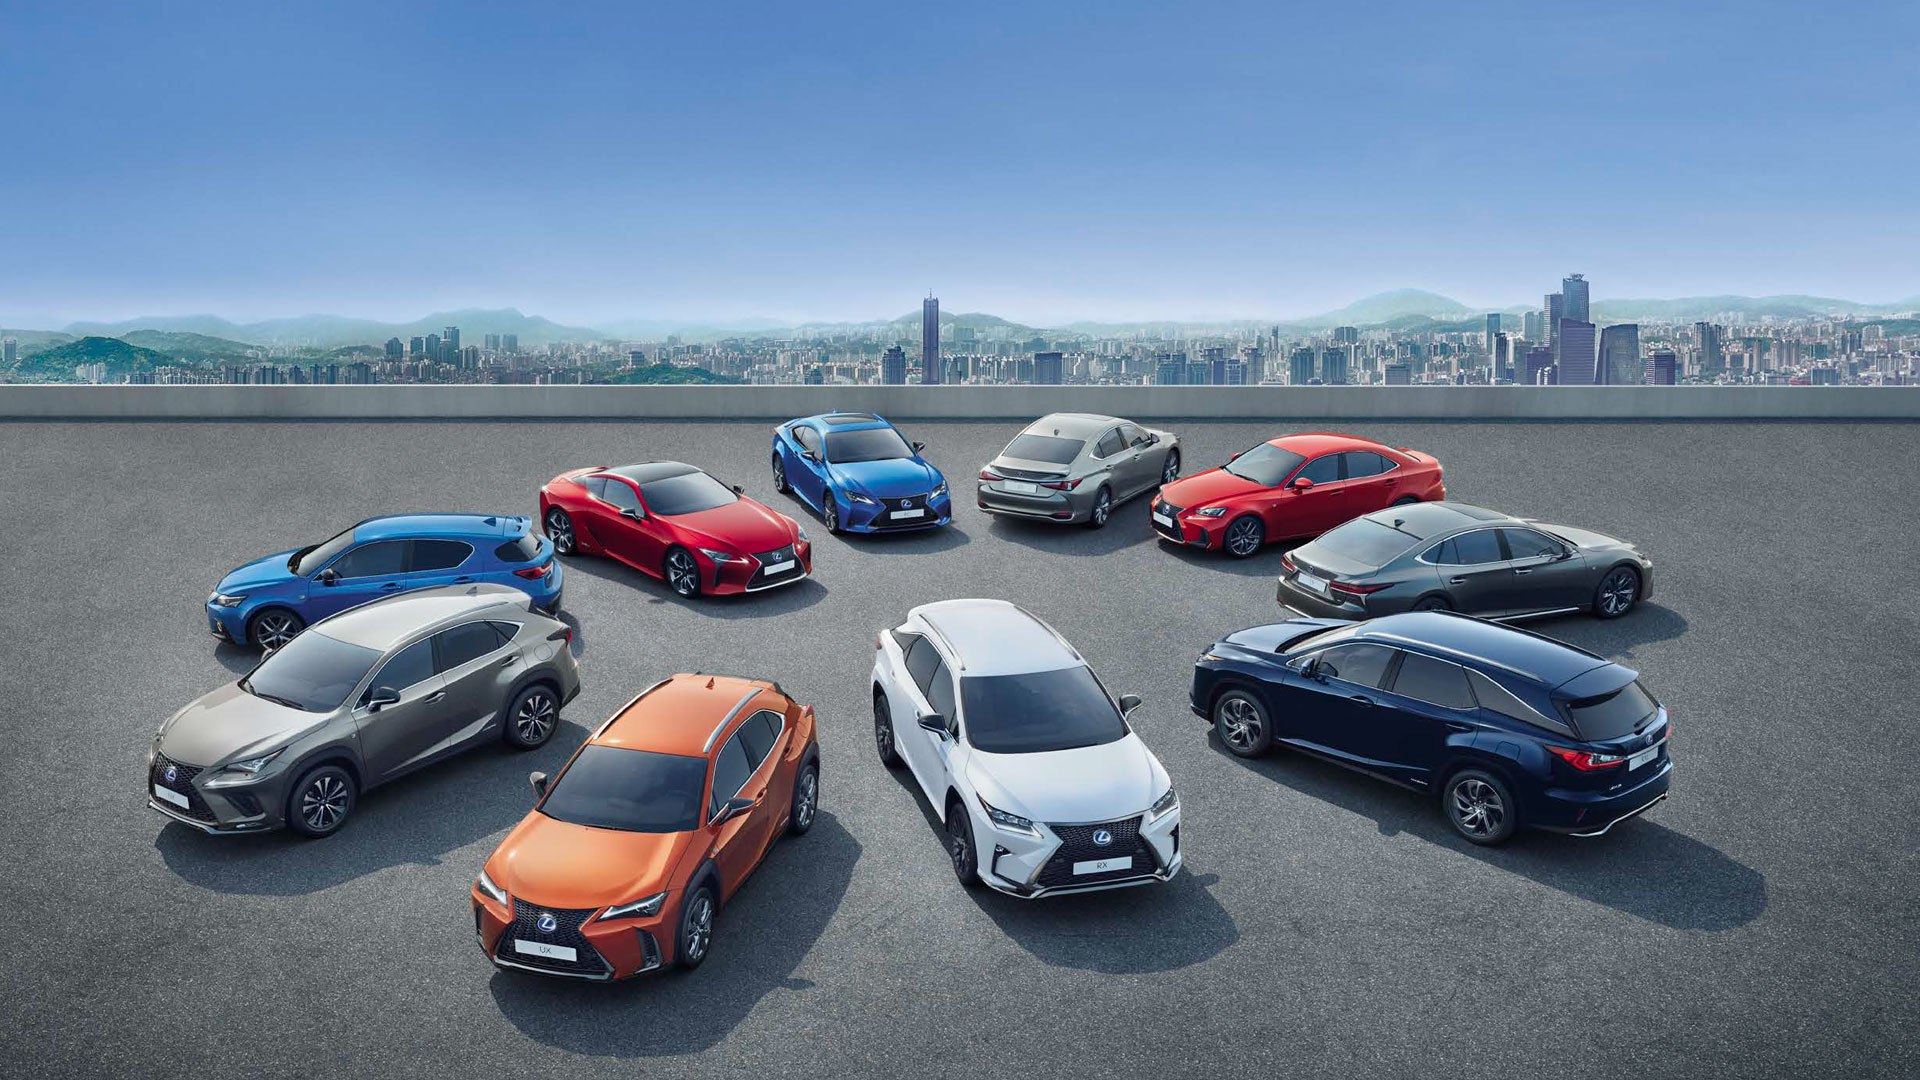 Lexus en Automobile Barcelona 2019 hero asset